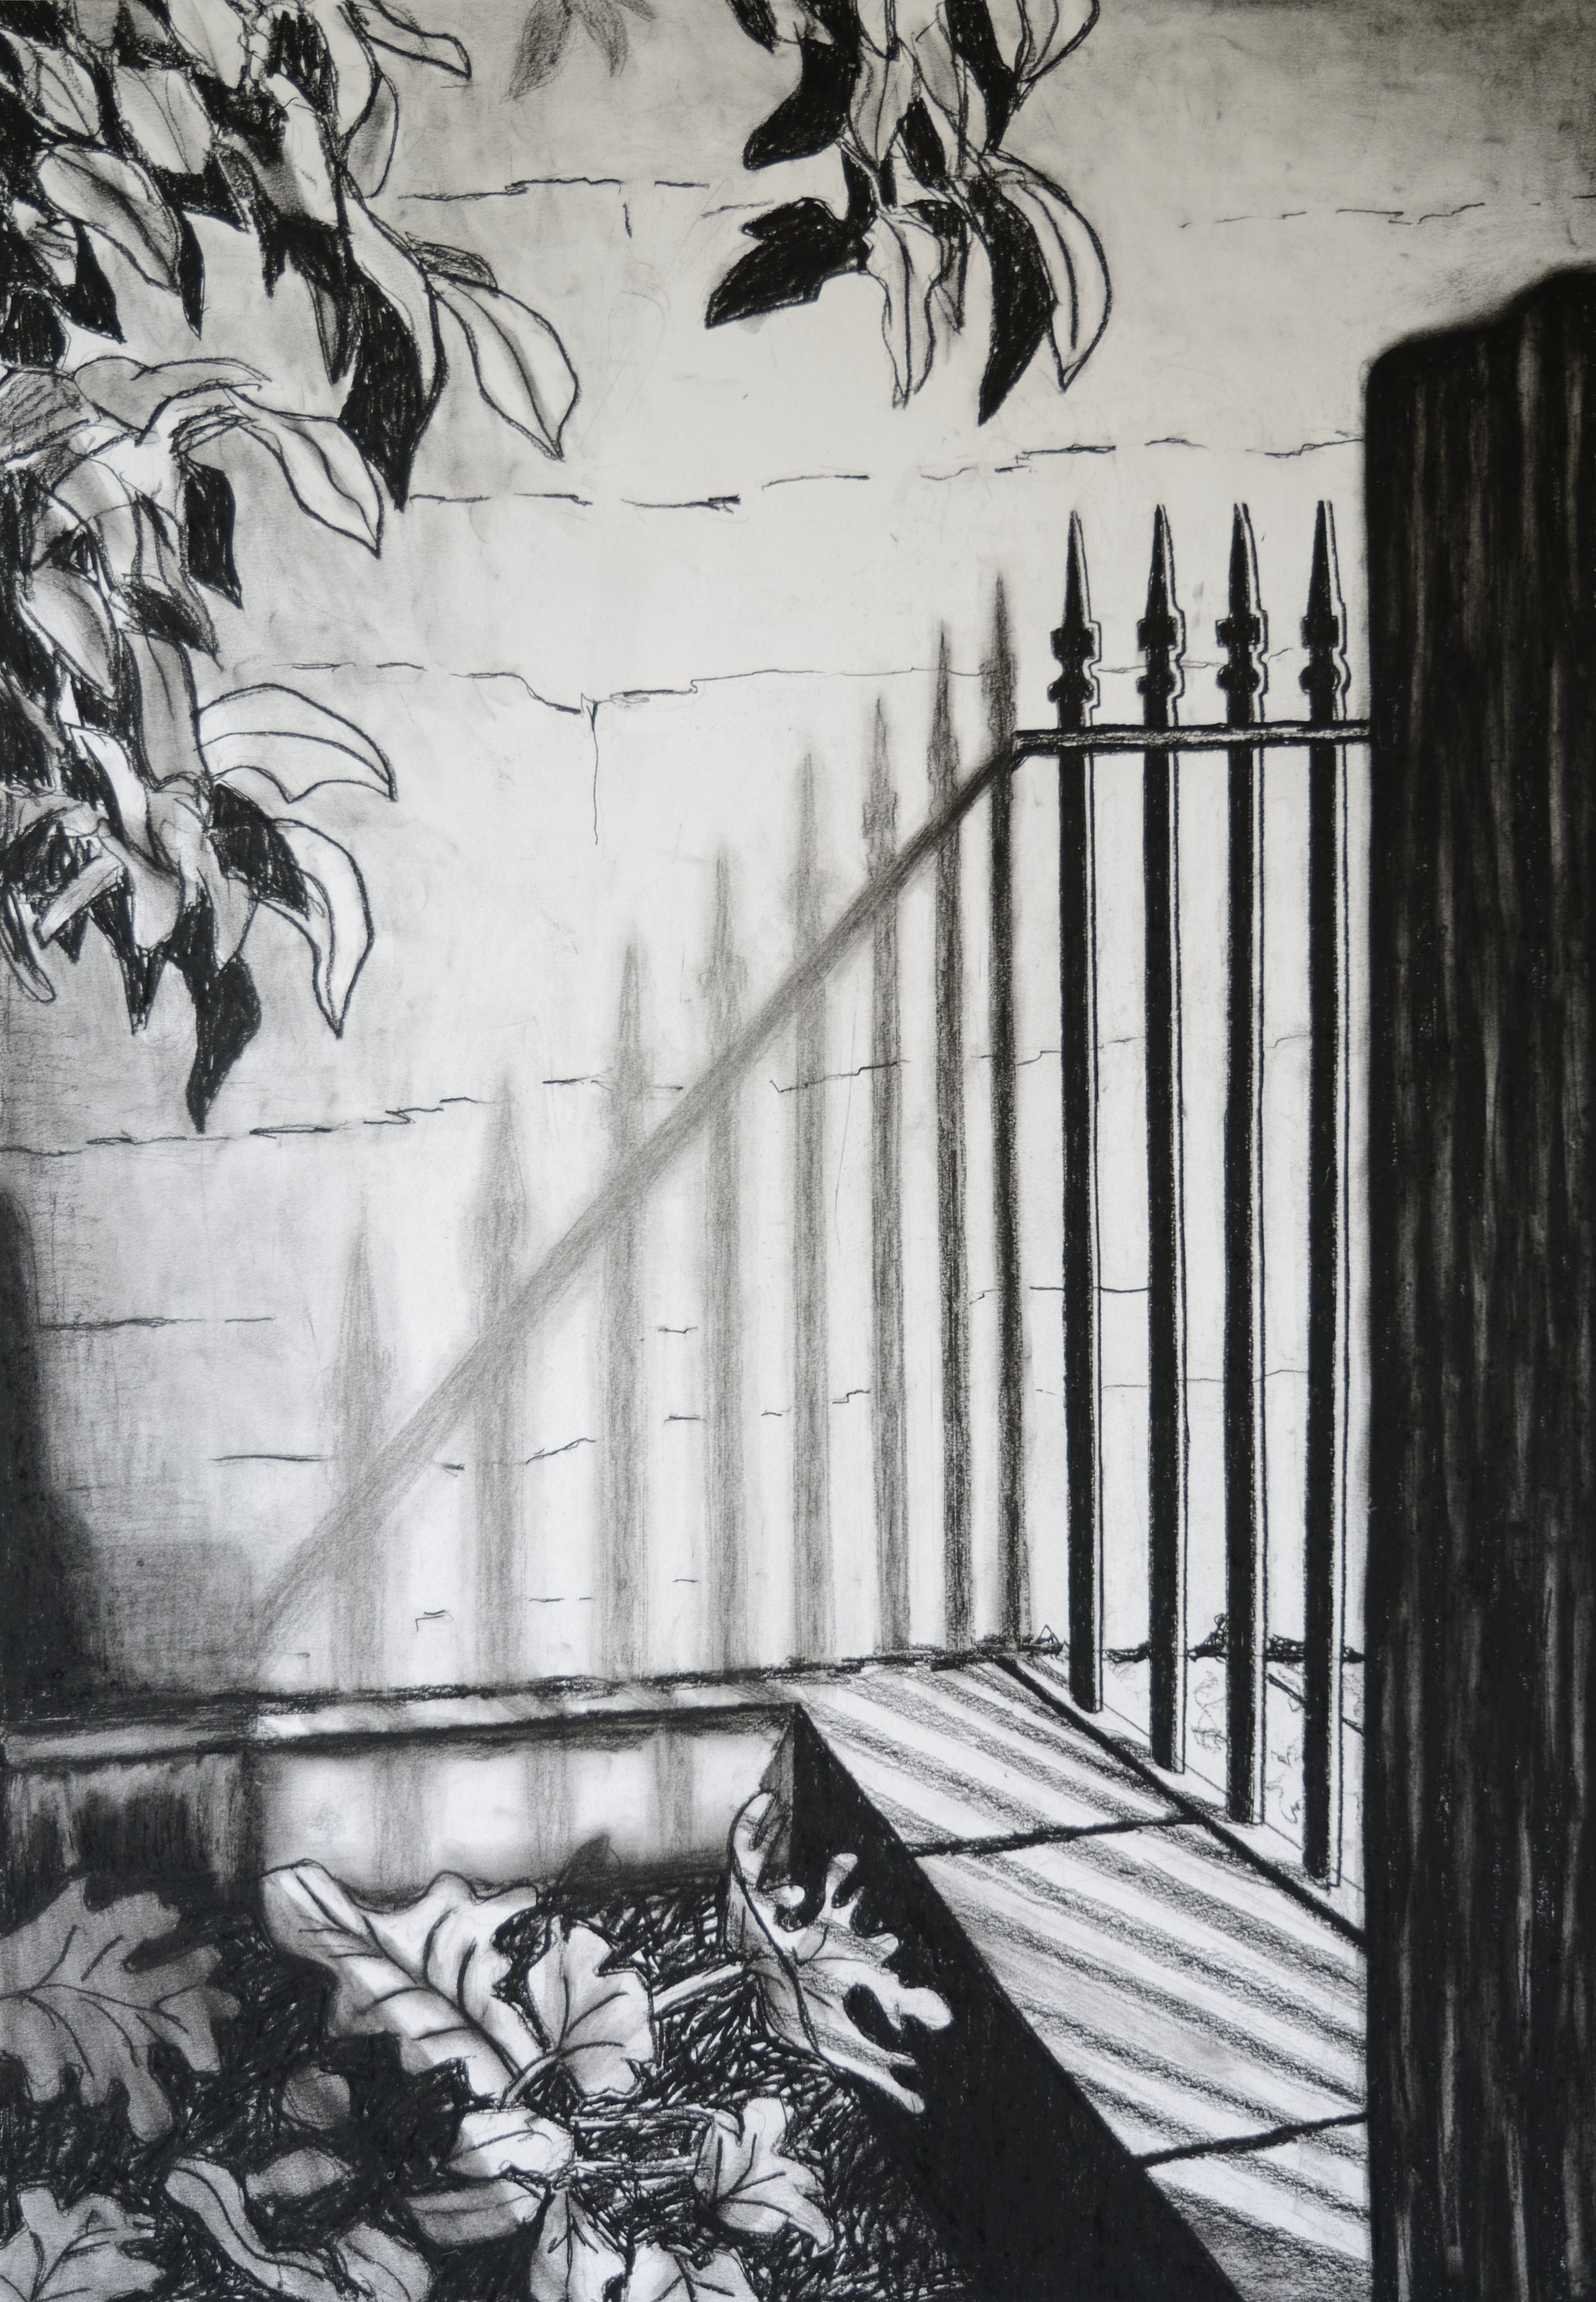 The Fence, 100x70cm, conte on paper